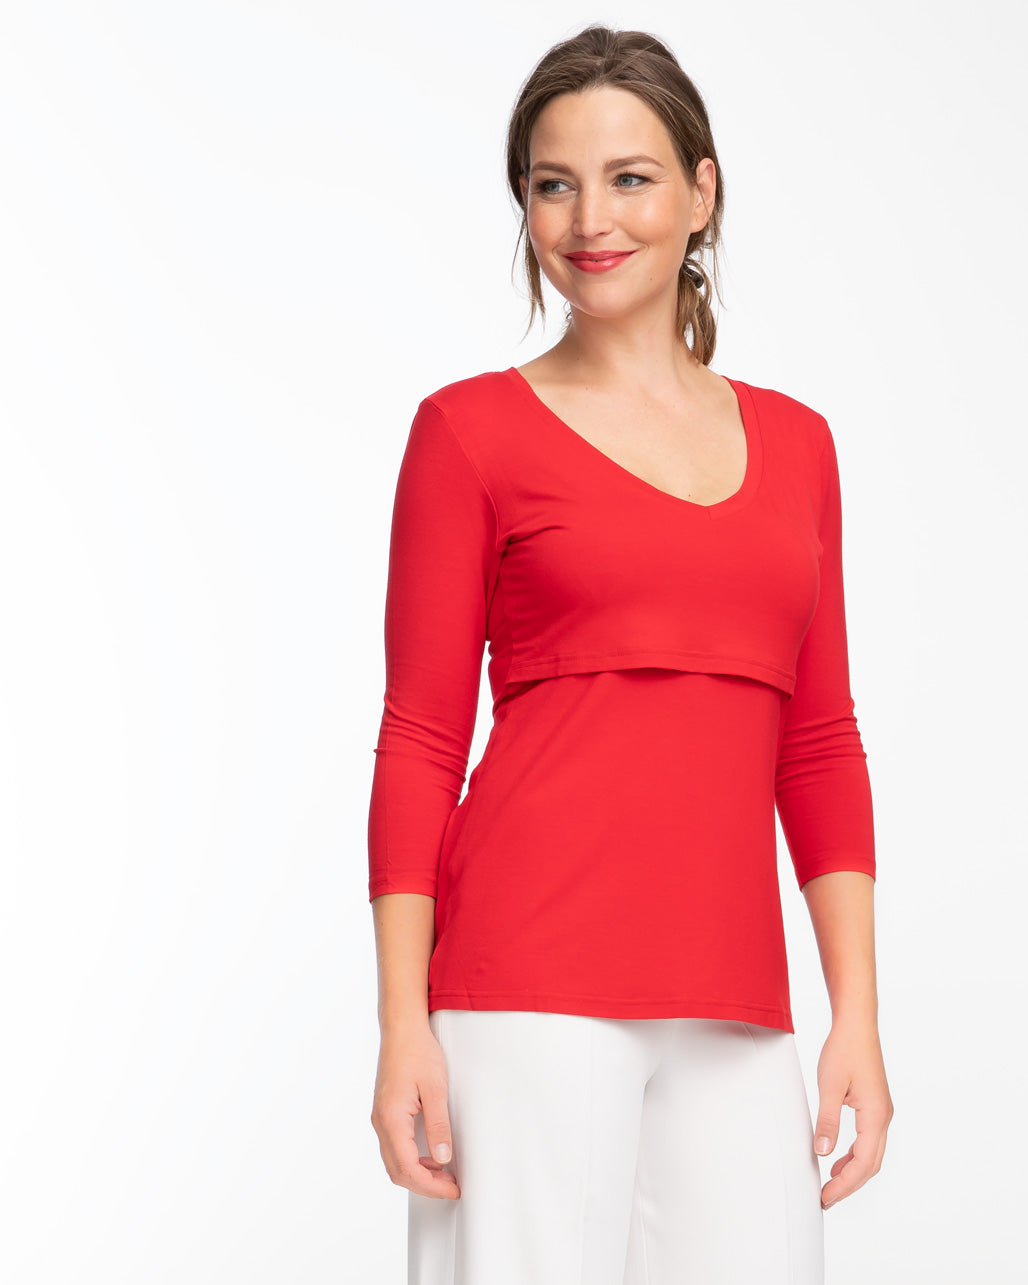 Red v-neck style nursing top by Peachymama 1